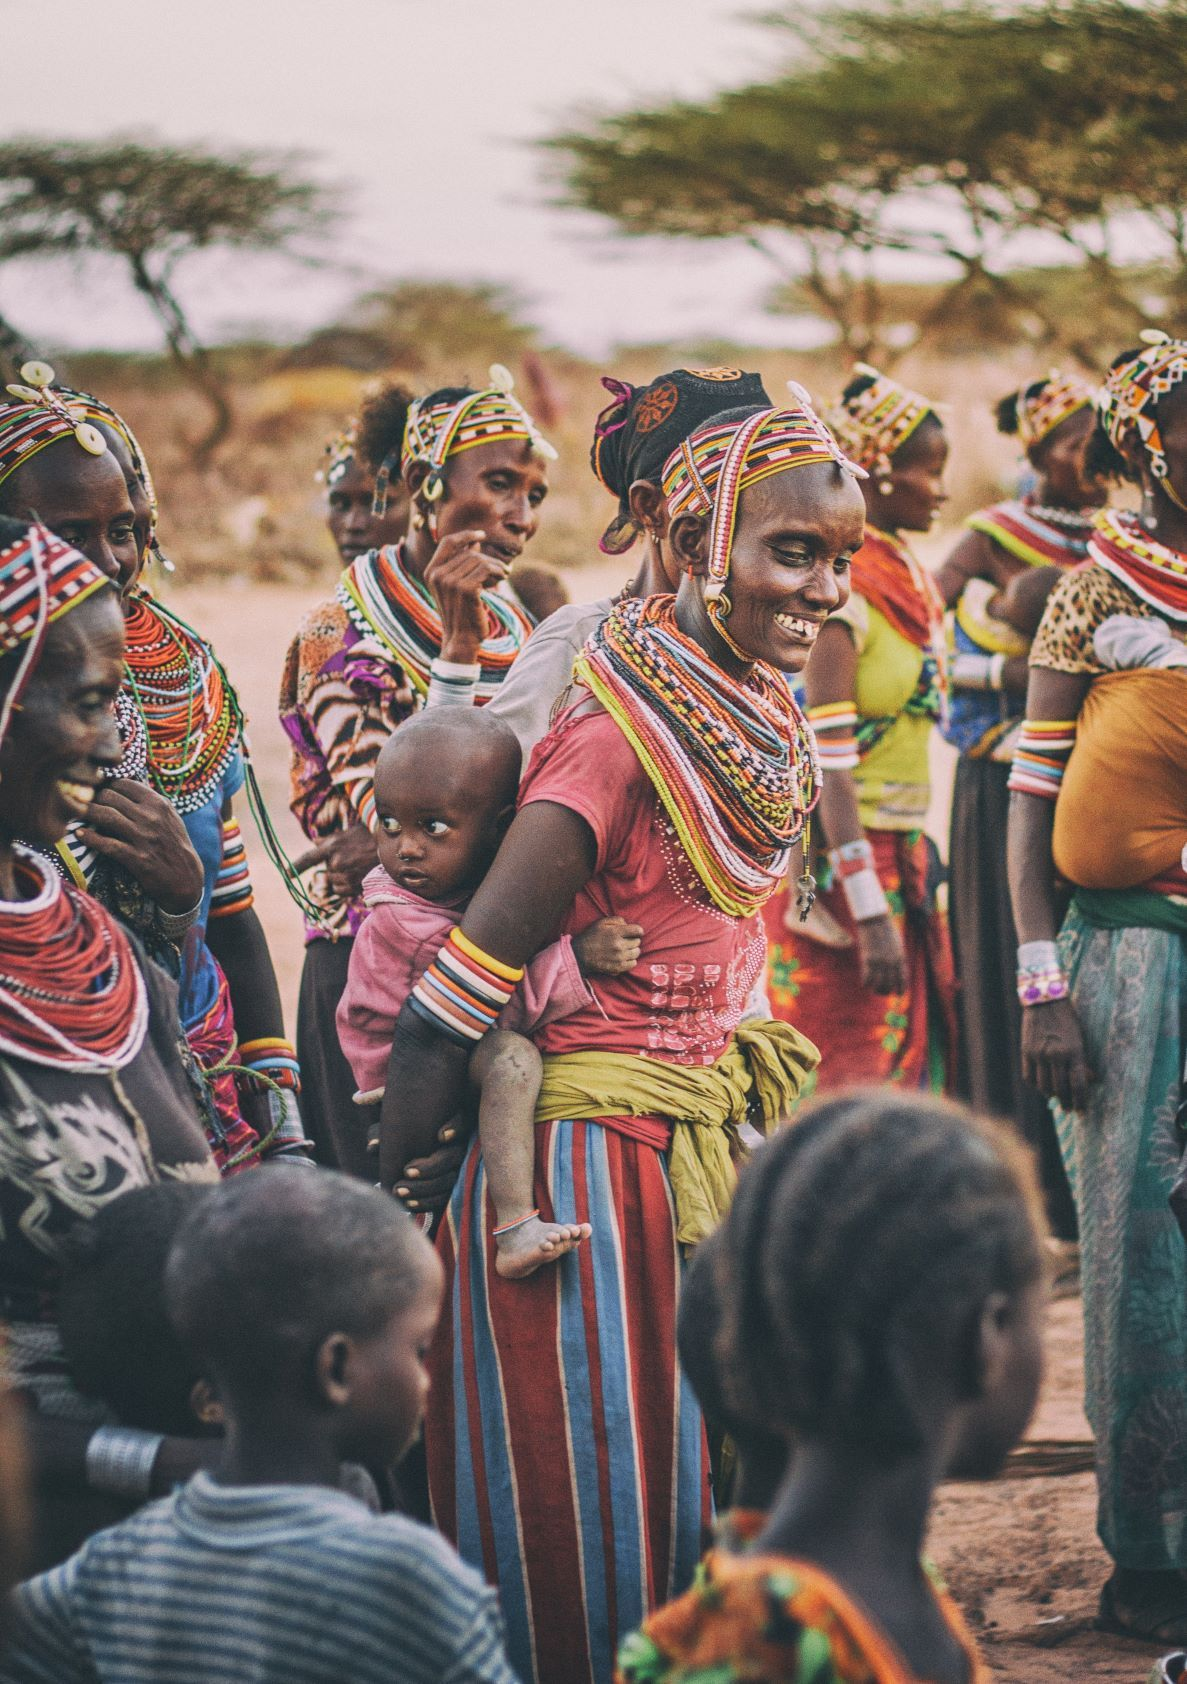 Immerse yourself when you travel to Kenya